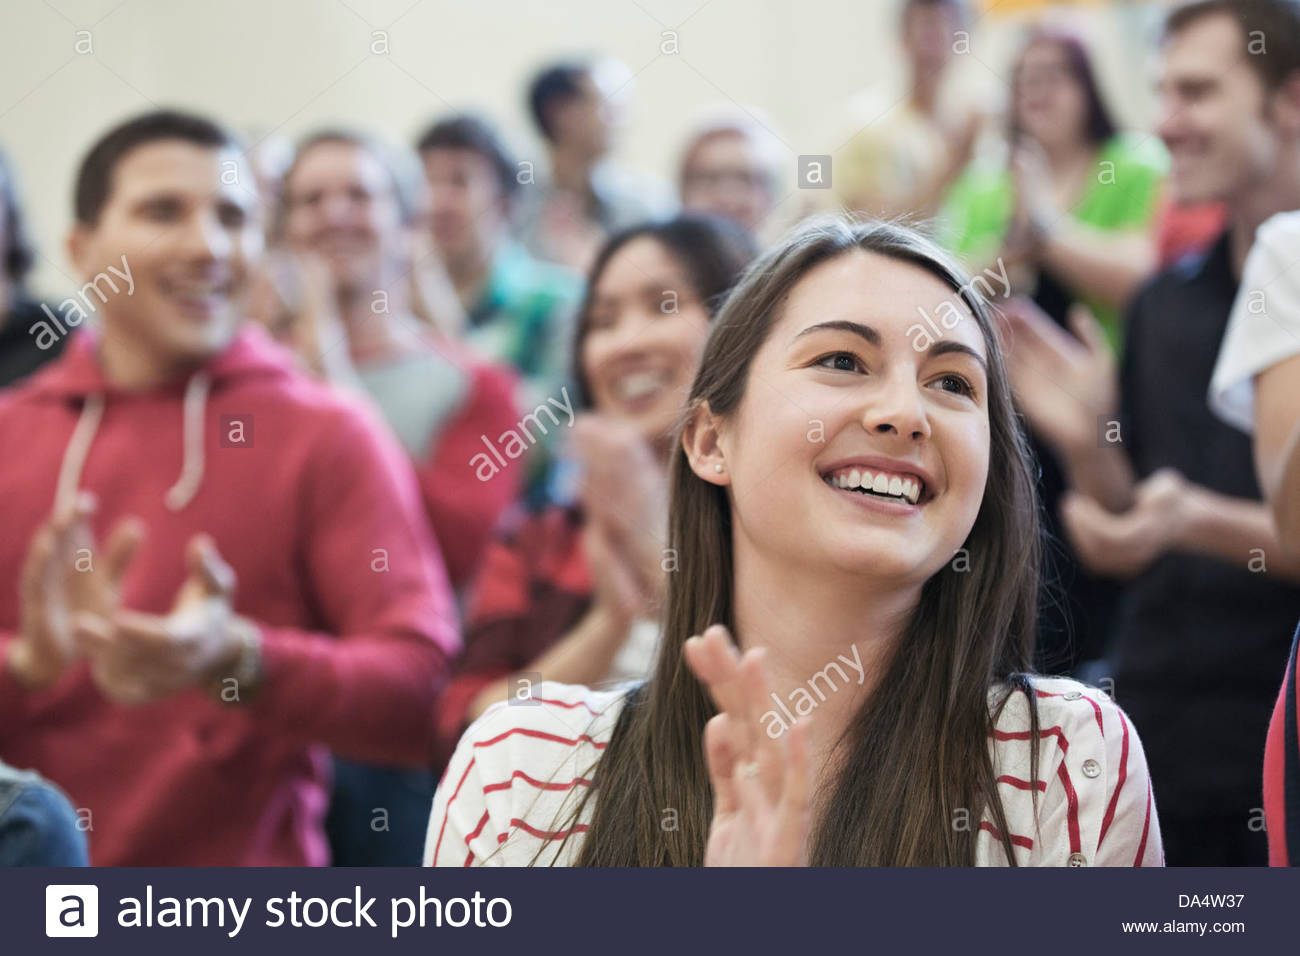 Female student clapping at college sporting event - Stock Image